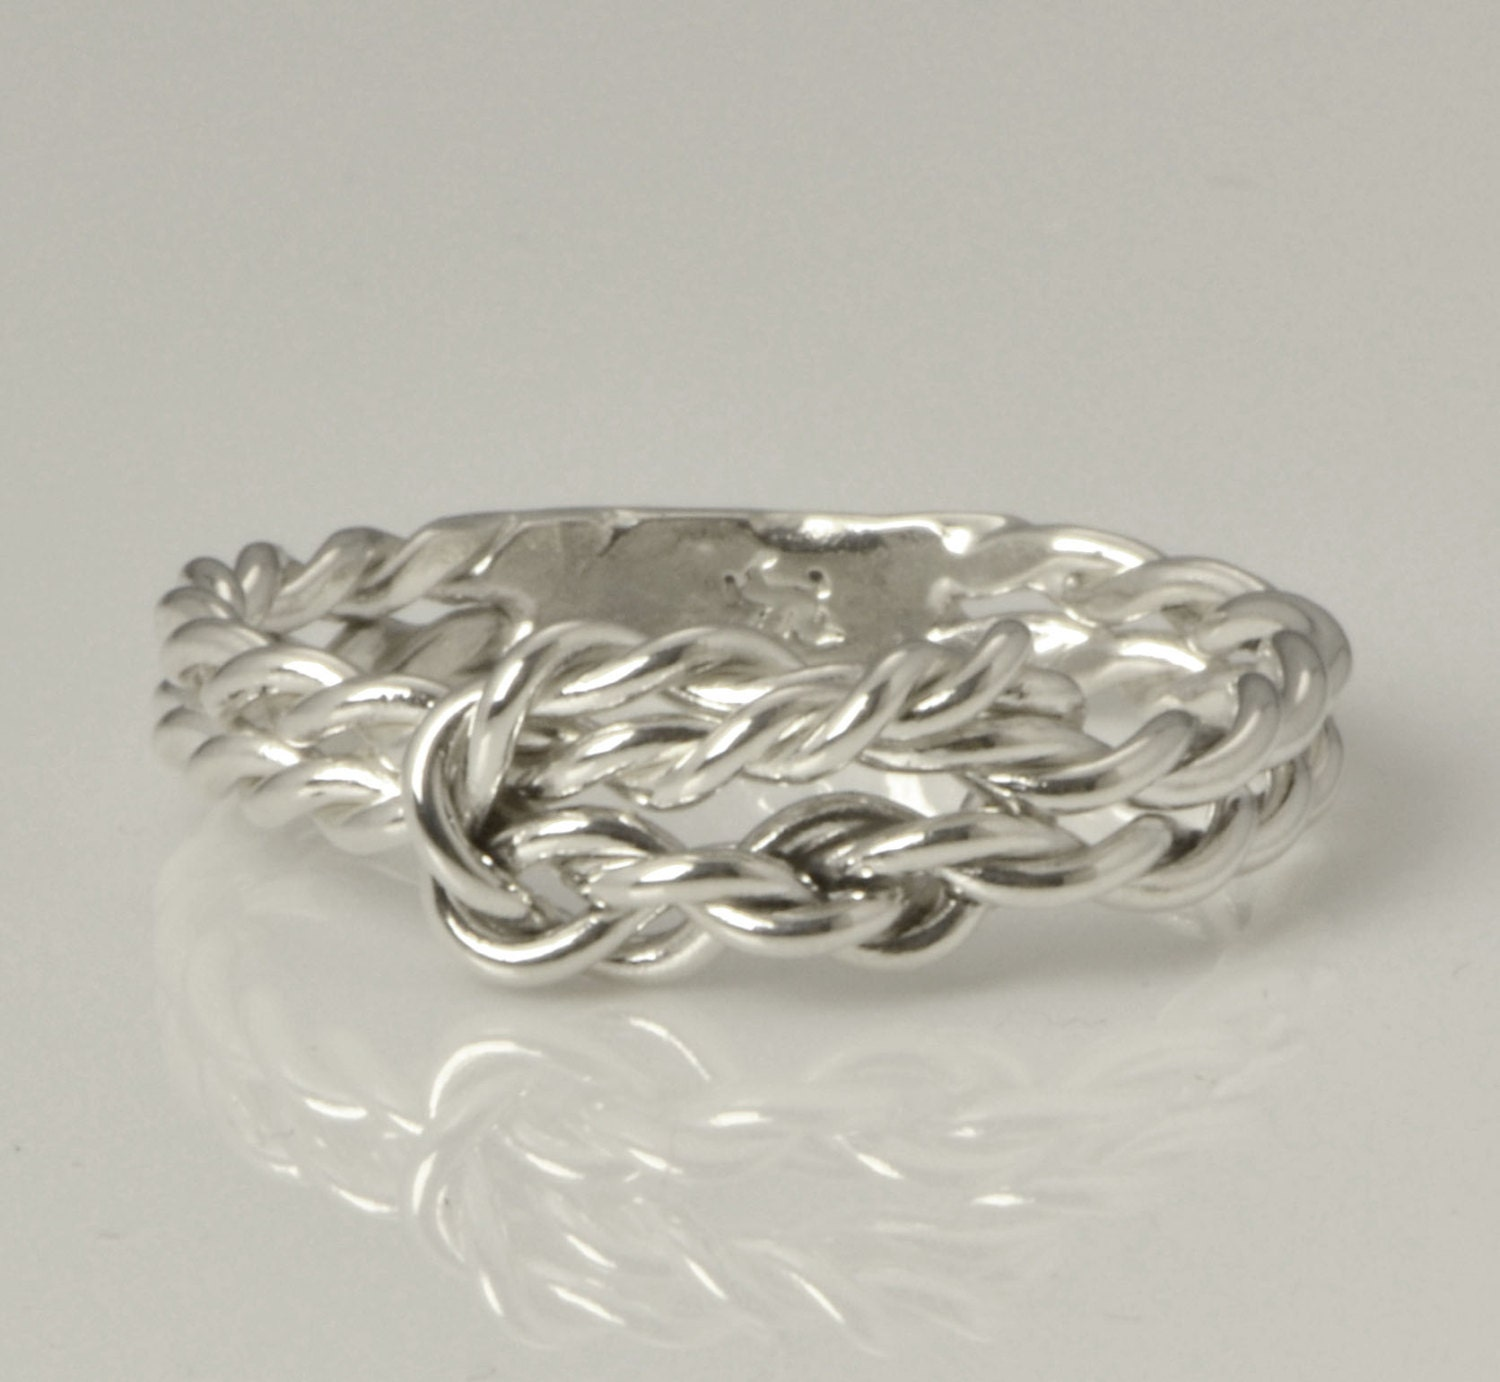 infinity knot ring promise ring thumb ring knot